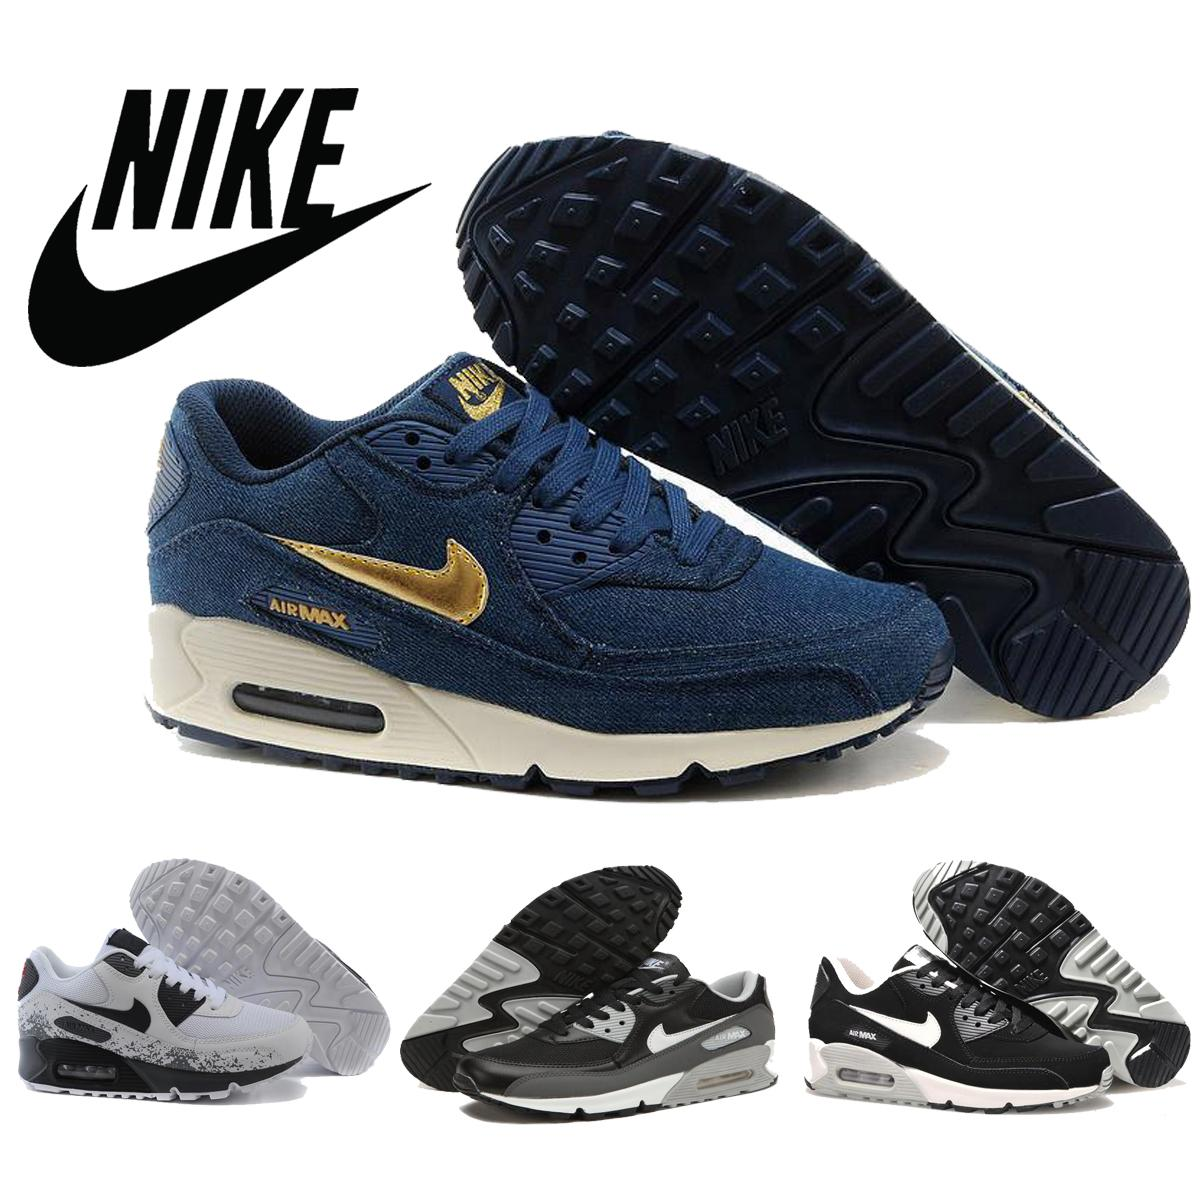 Discount Shoes Run Air Max | 2016 Shoes Run Air Max on Sale at DHgate.com